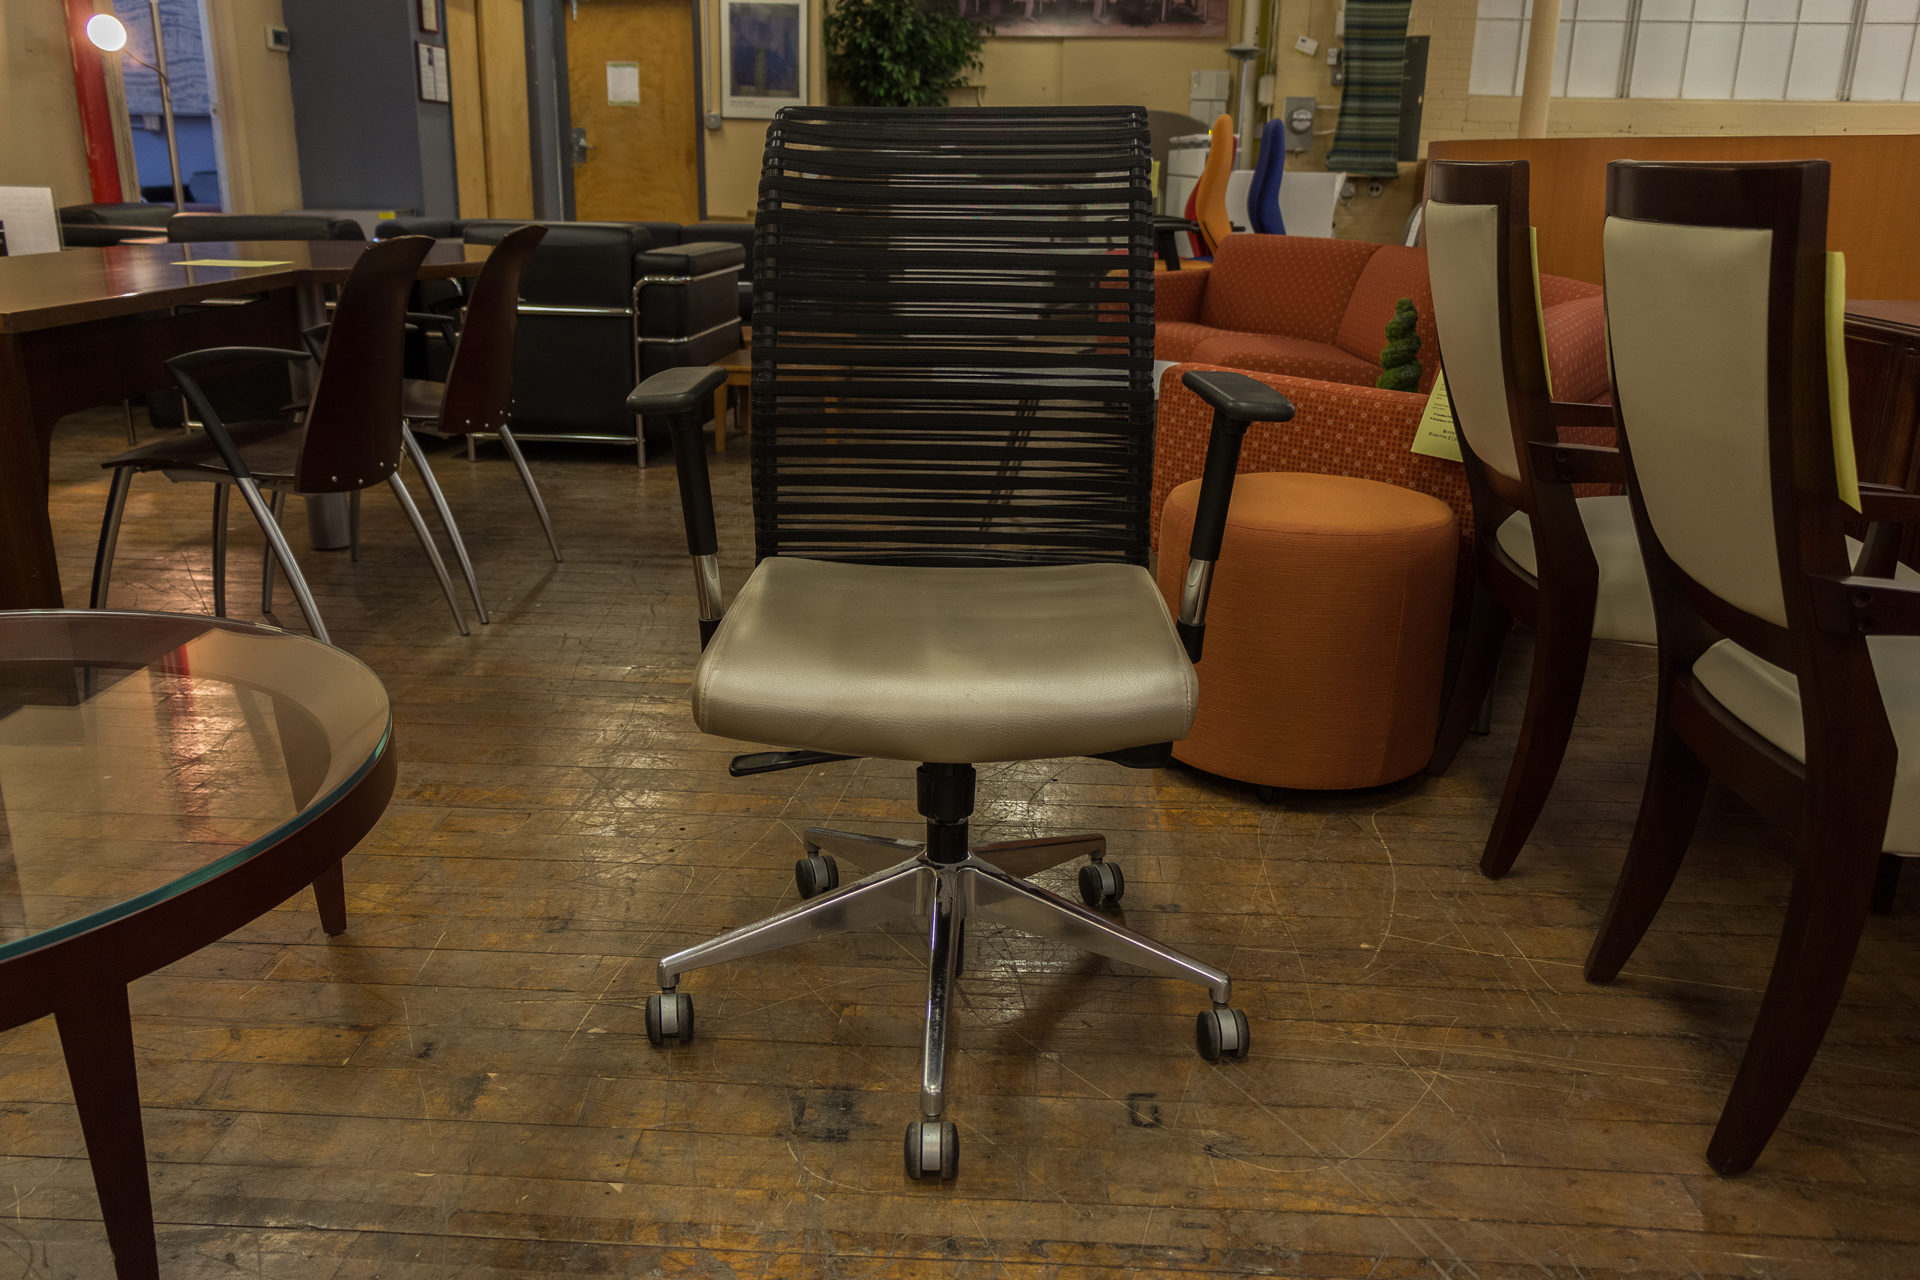 peartreeofficefurniture_peartreeofficefurniture_peartreeofficefurniture_allseating-zip-mesh-task-chairs-2.jpg